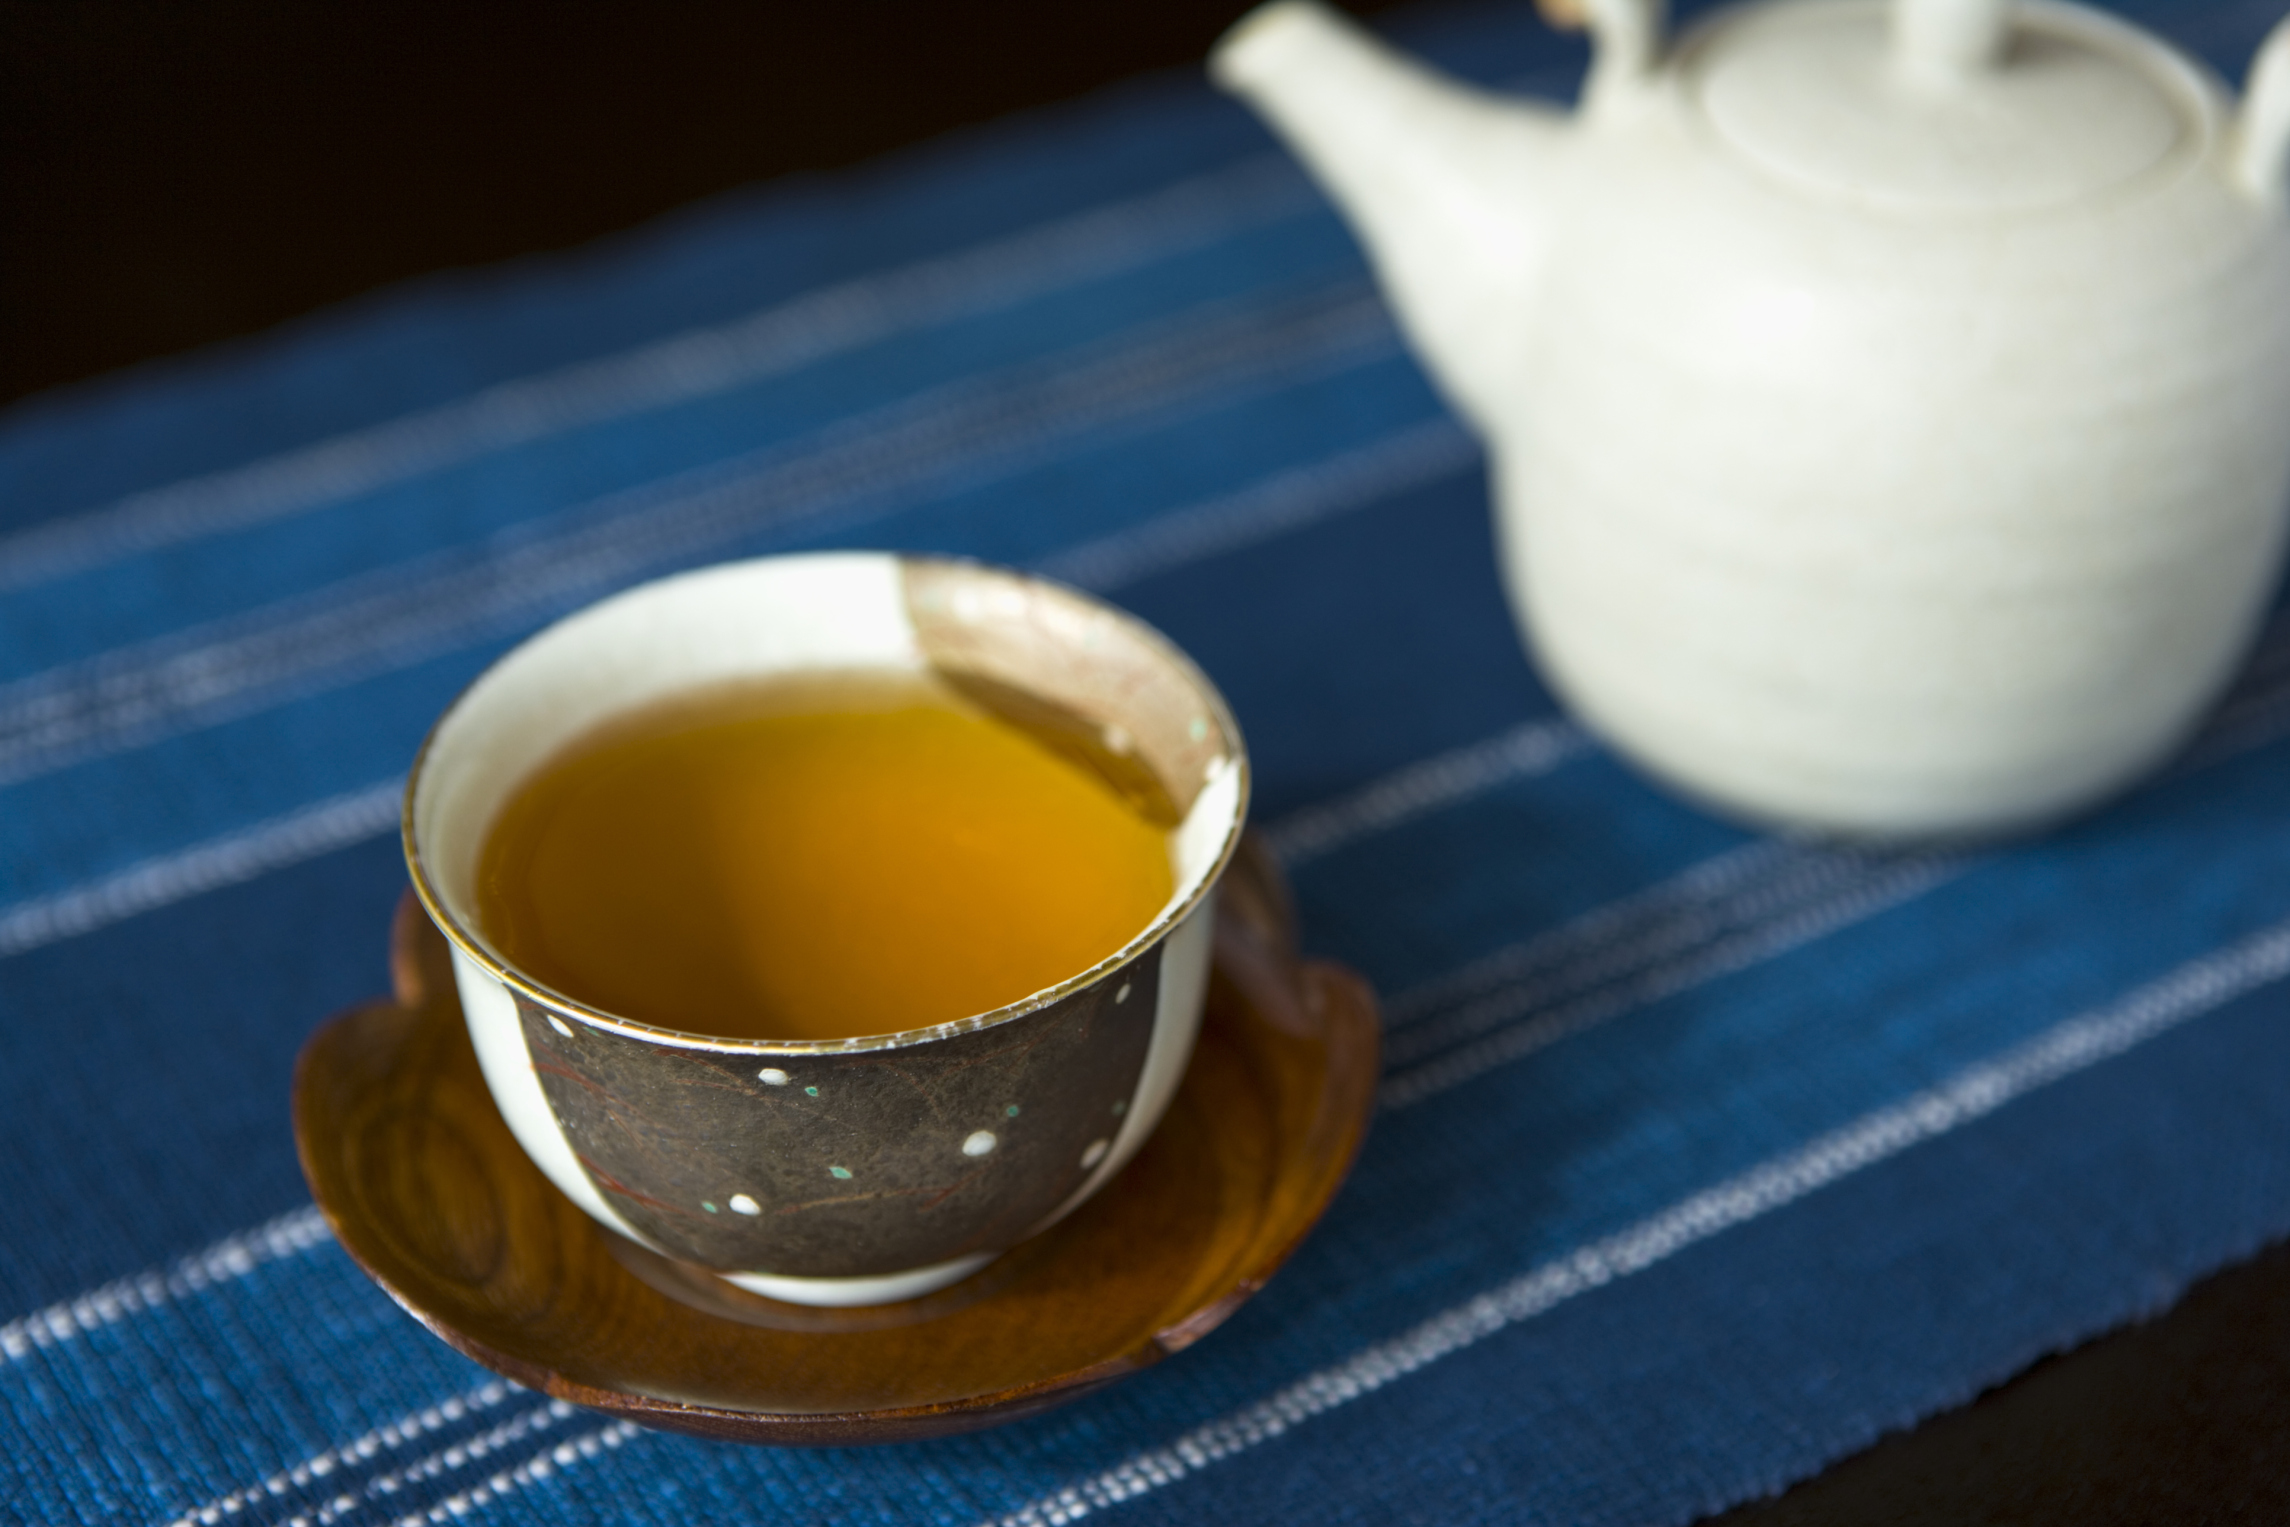 What Can Happen After Drinking a Lot of Tea per Day? | LIVESTRONG.COM